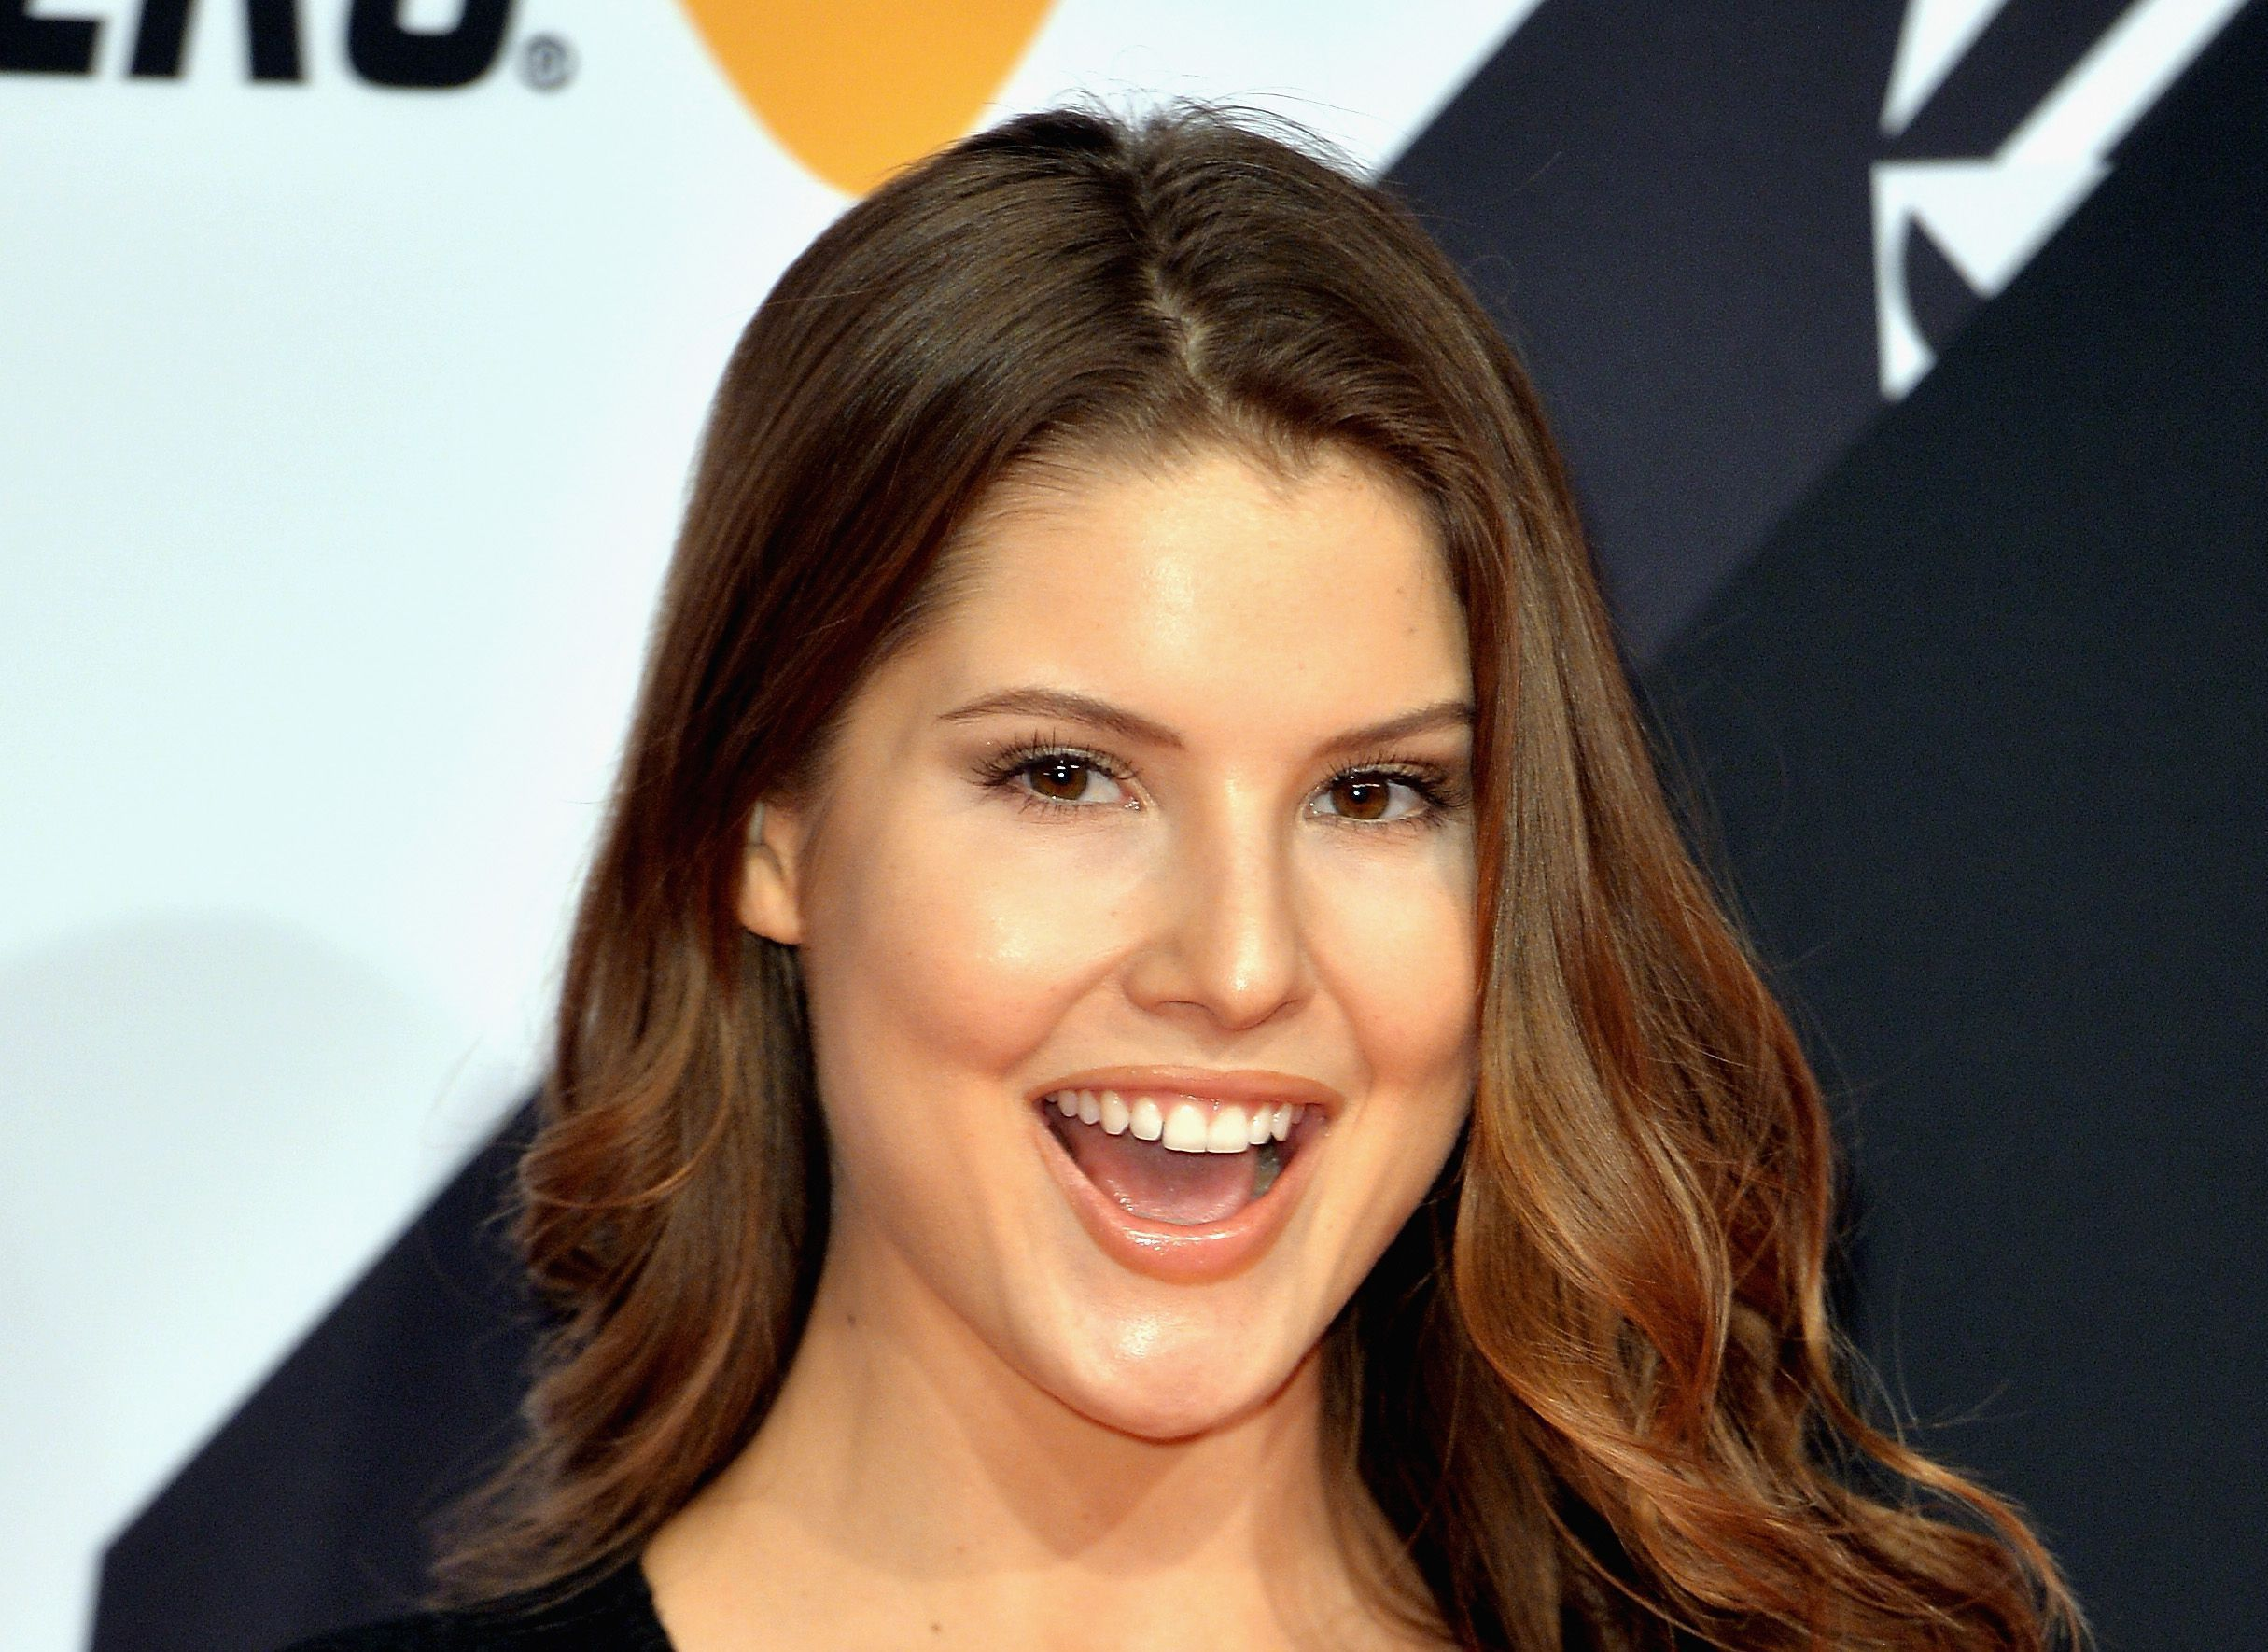 beautiful amanda cerny look hd desktop free mobile pictures